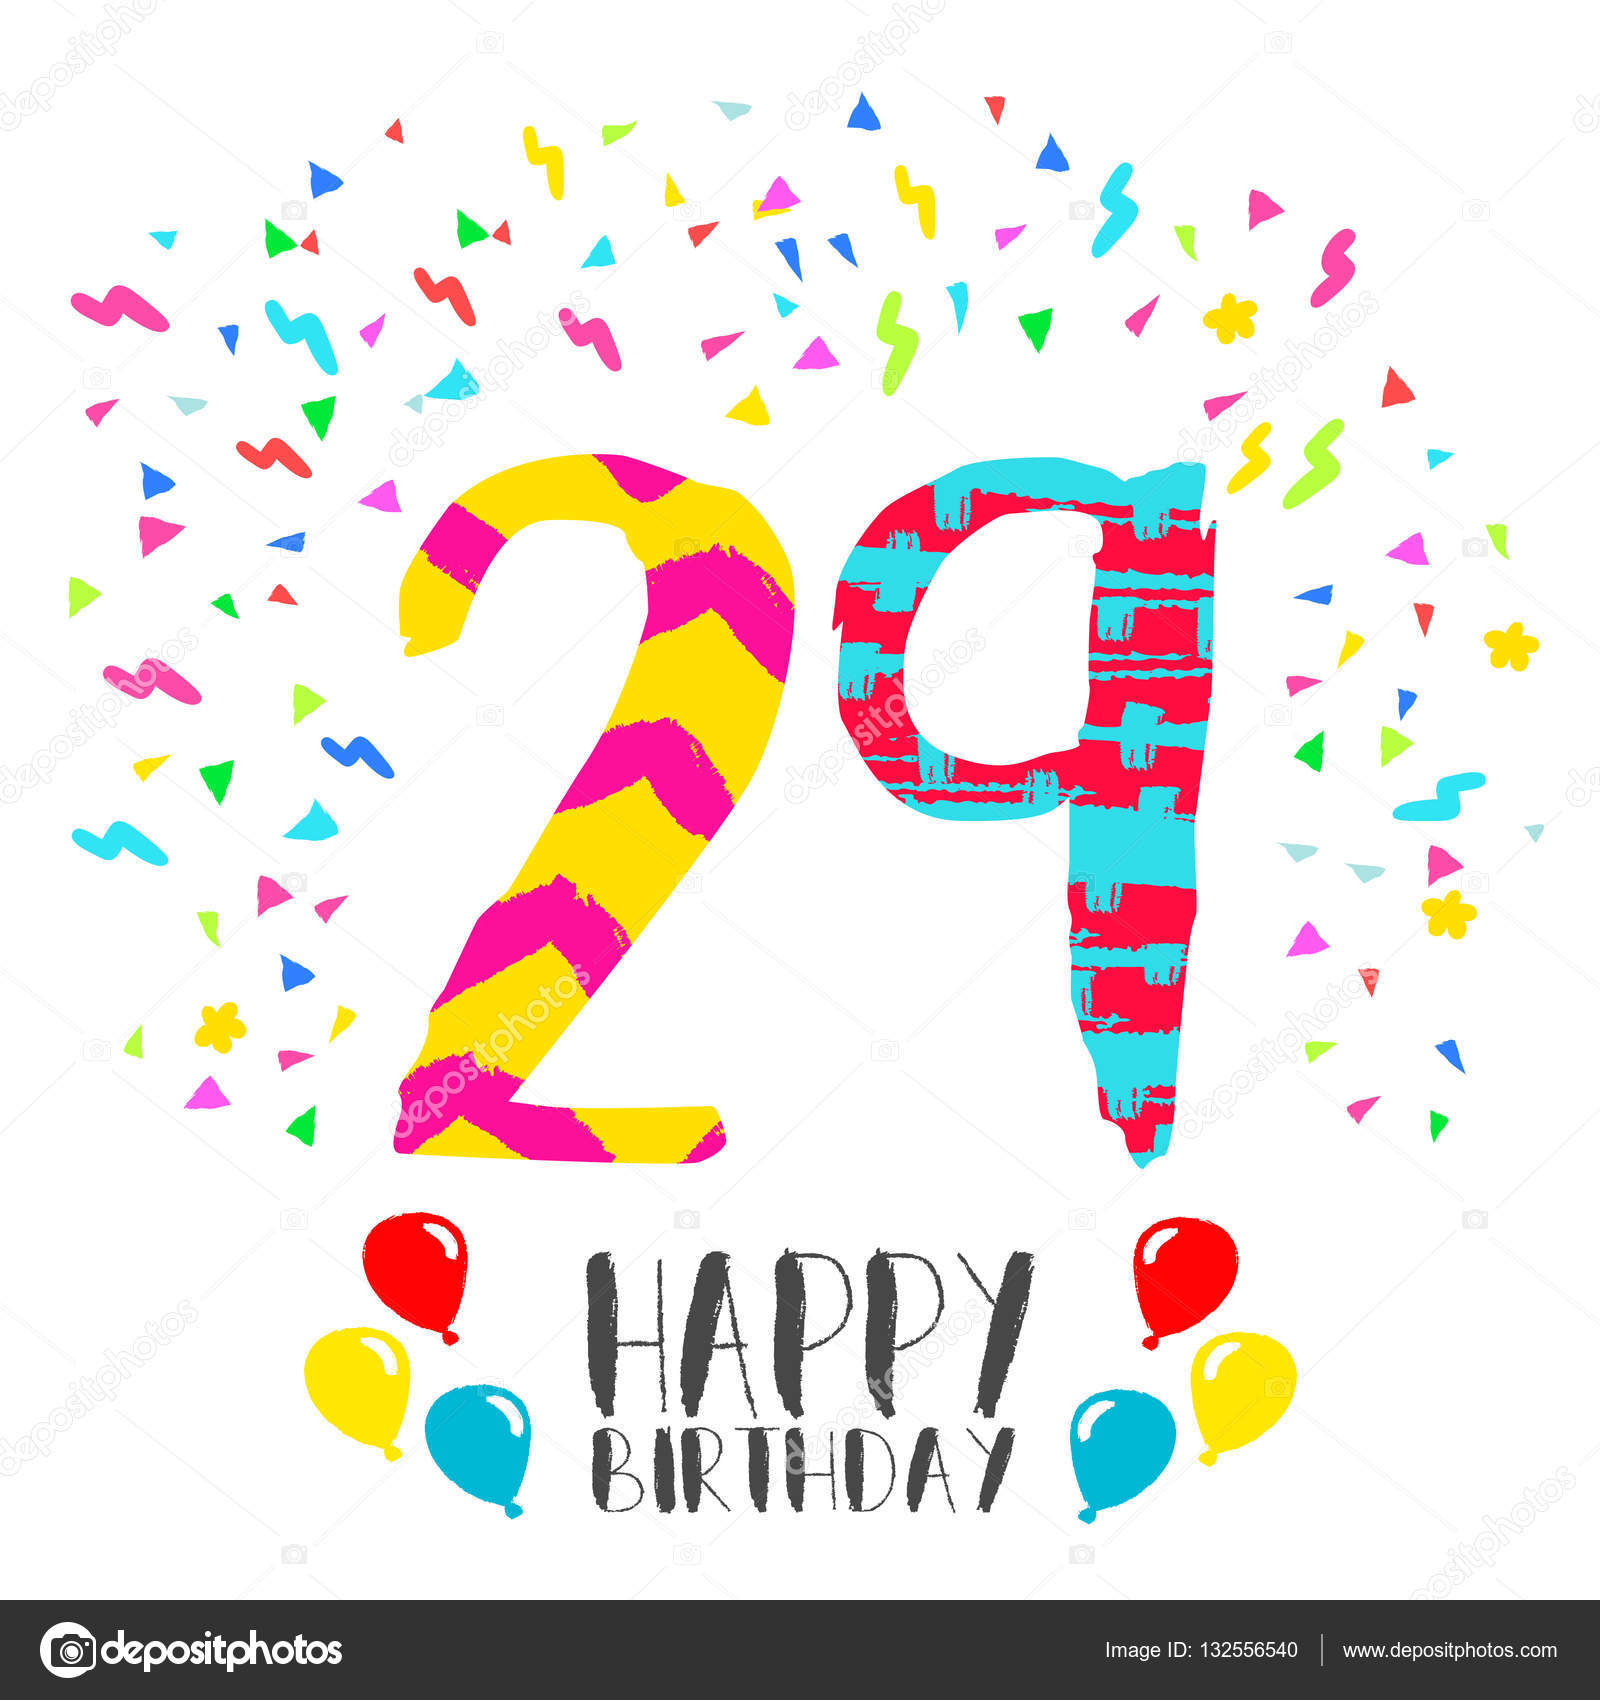 Happy birthday for 29 year party invitation card stock vector happy birthday for 29 year party invitation card stock vector bookmarktalkfo Images